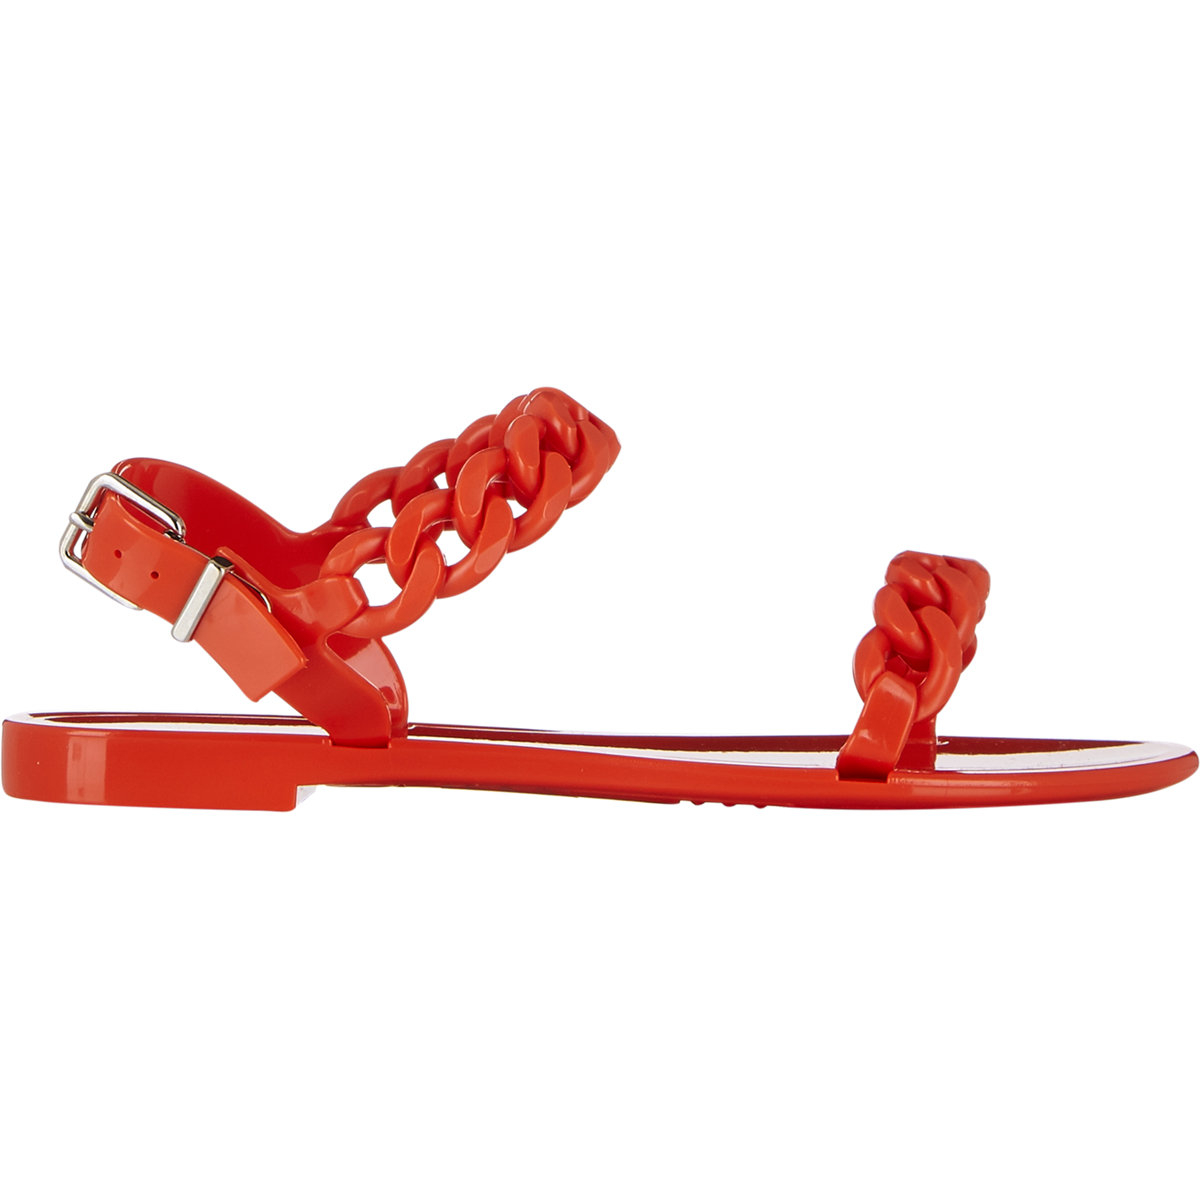 c11523f2fe5b Lyst - Givenchy Women s Chain-link Jelly Sandals in Orange